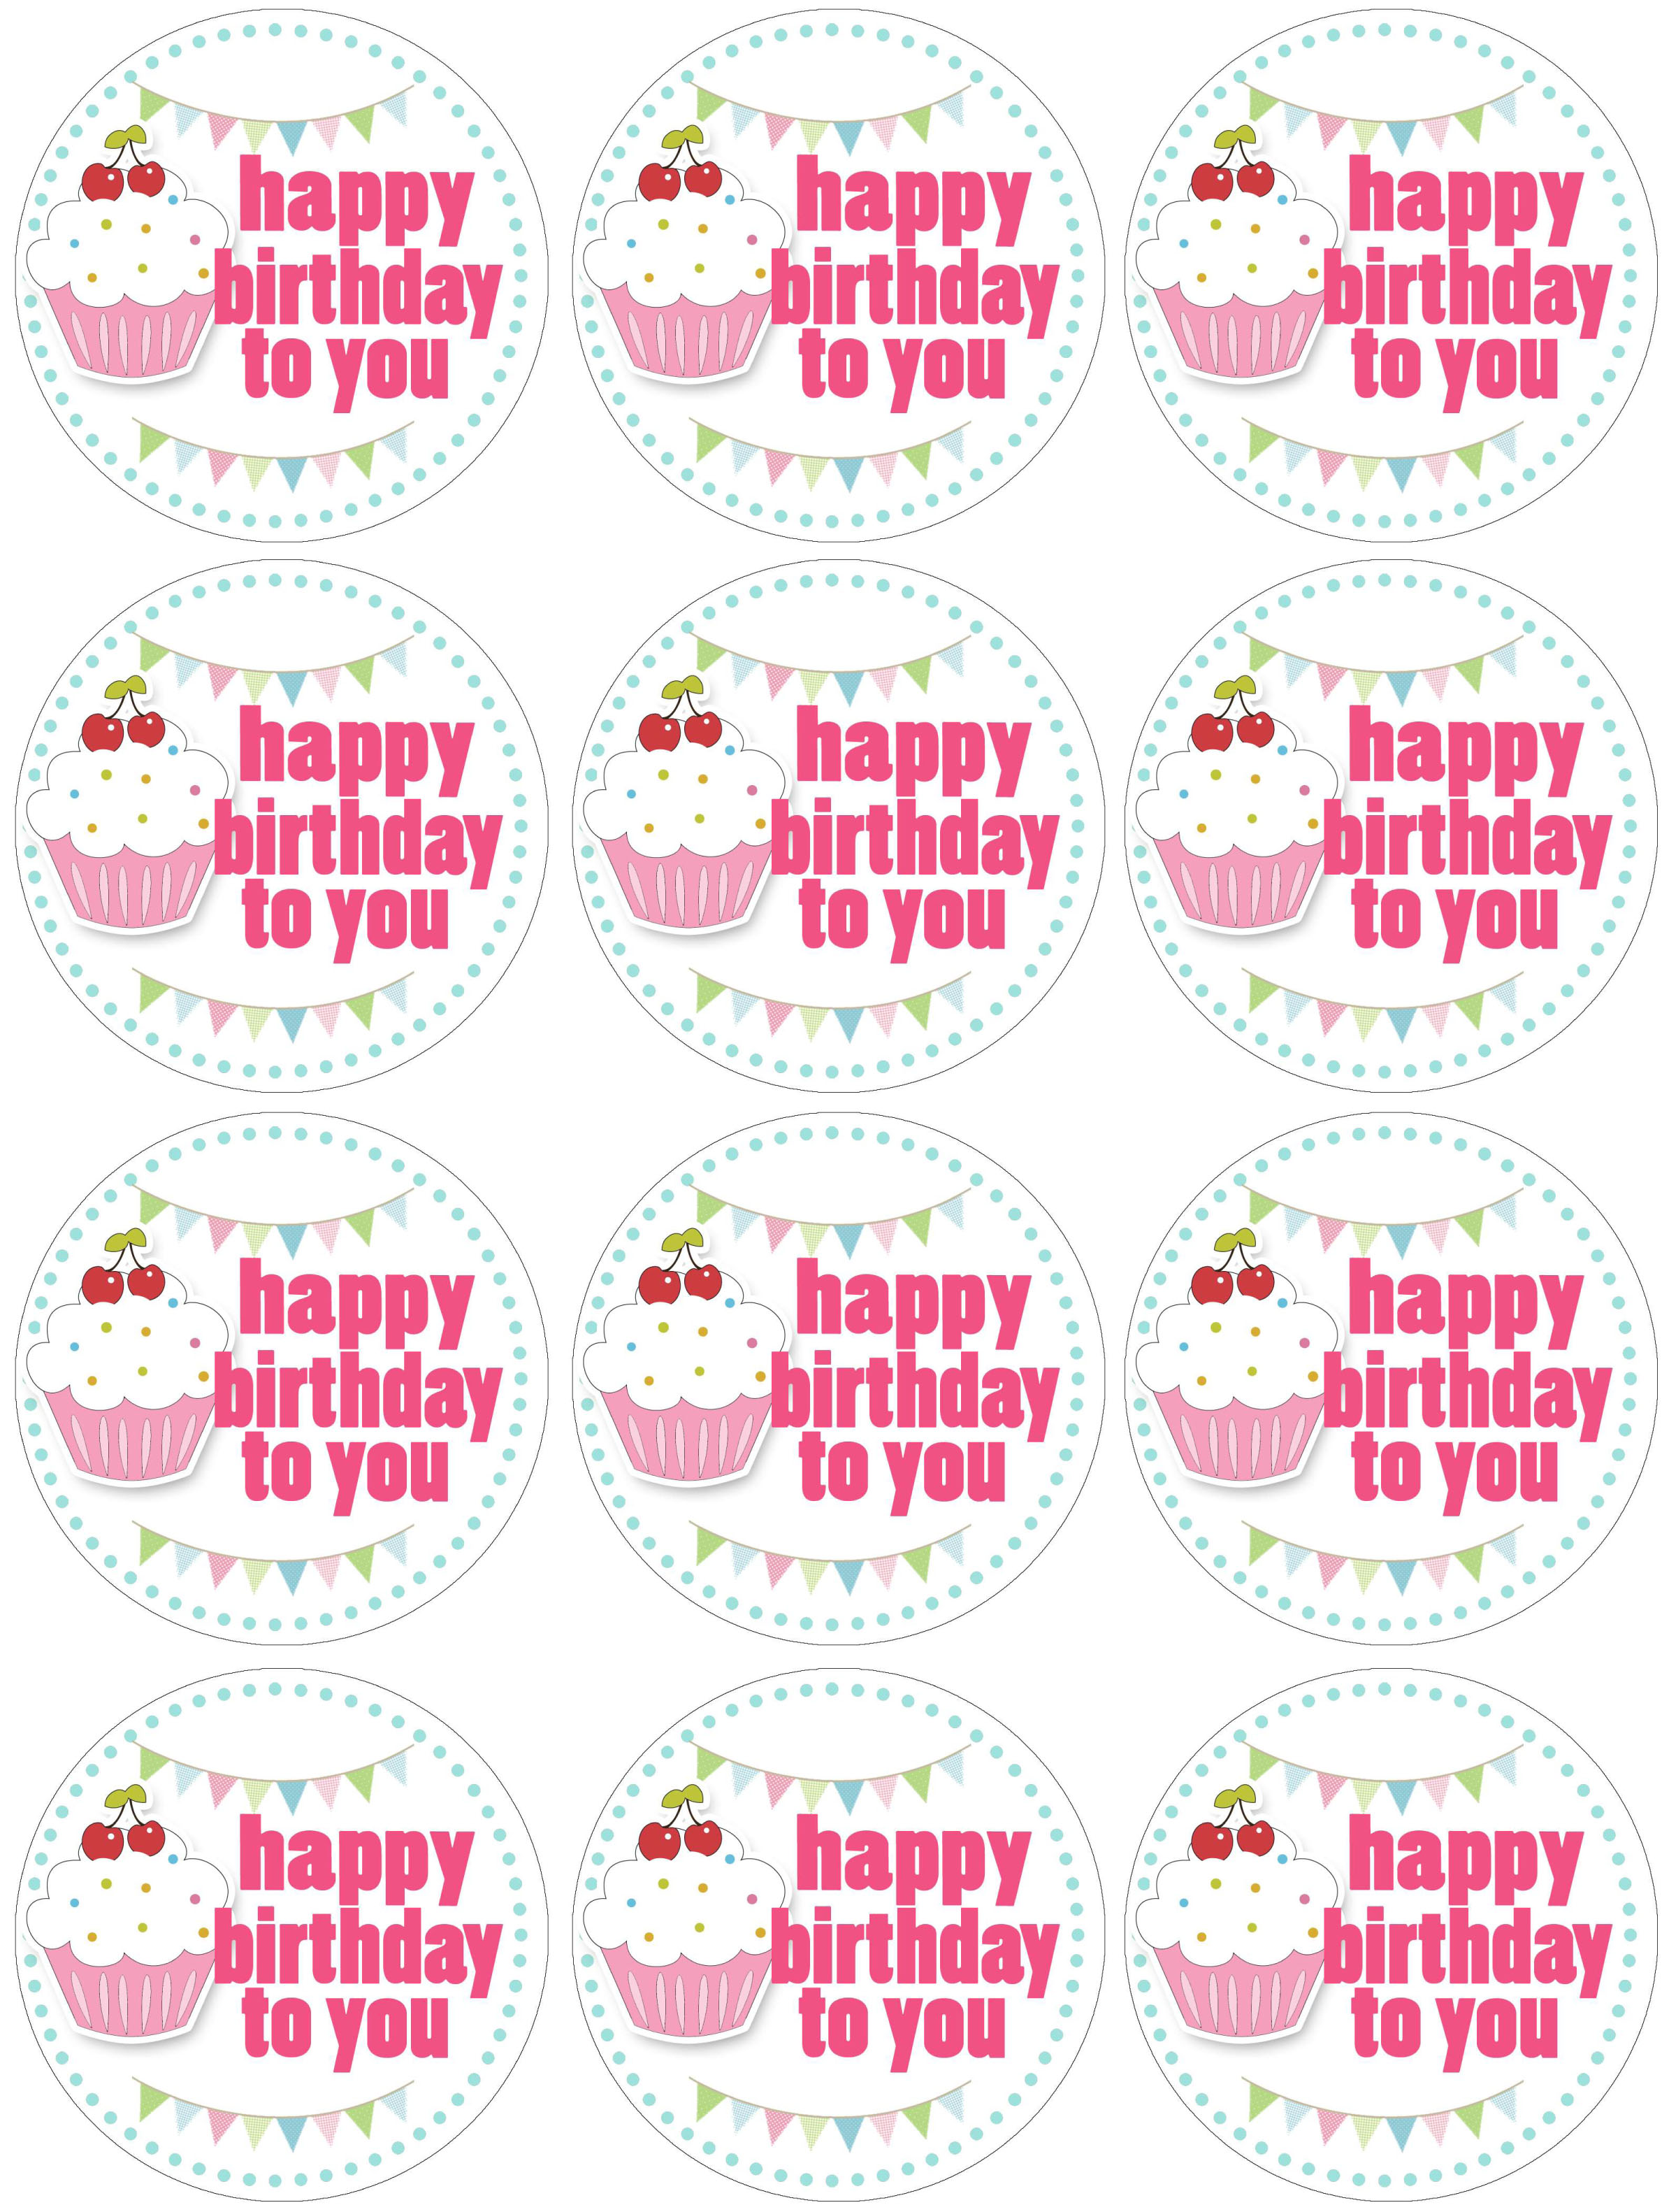 picture regarding Printable Cake Topper Templates named 10 Printable Birthday Cupcakes Photograph - Absolutely free Printable Joyful